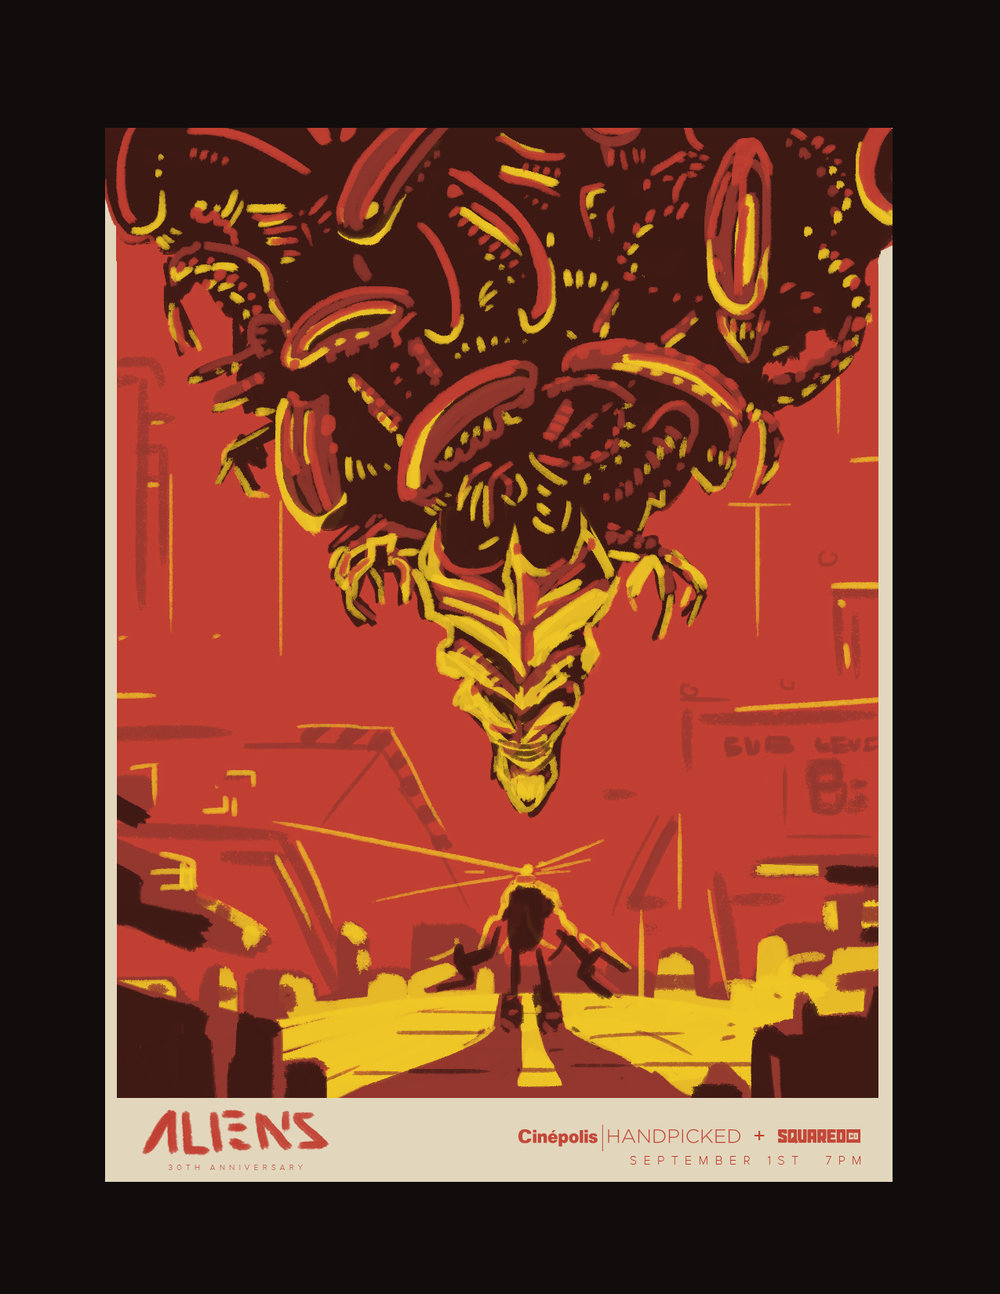 ALIENS_Roughs-01-ColorBlock-C.jpg